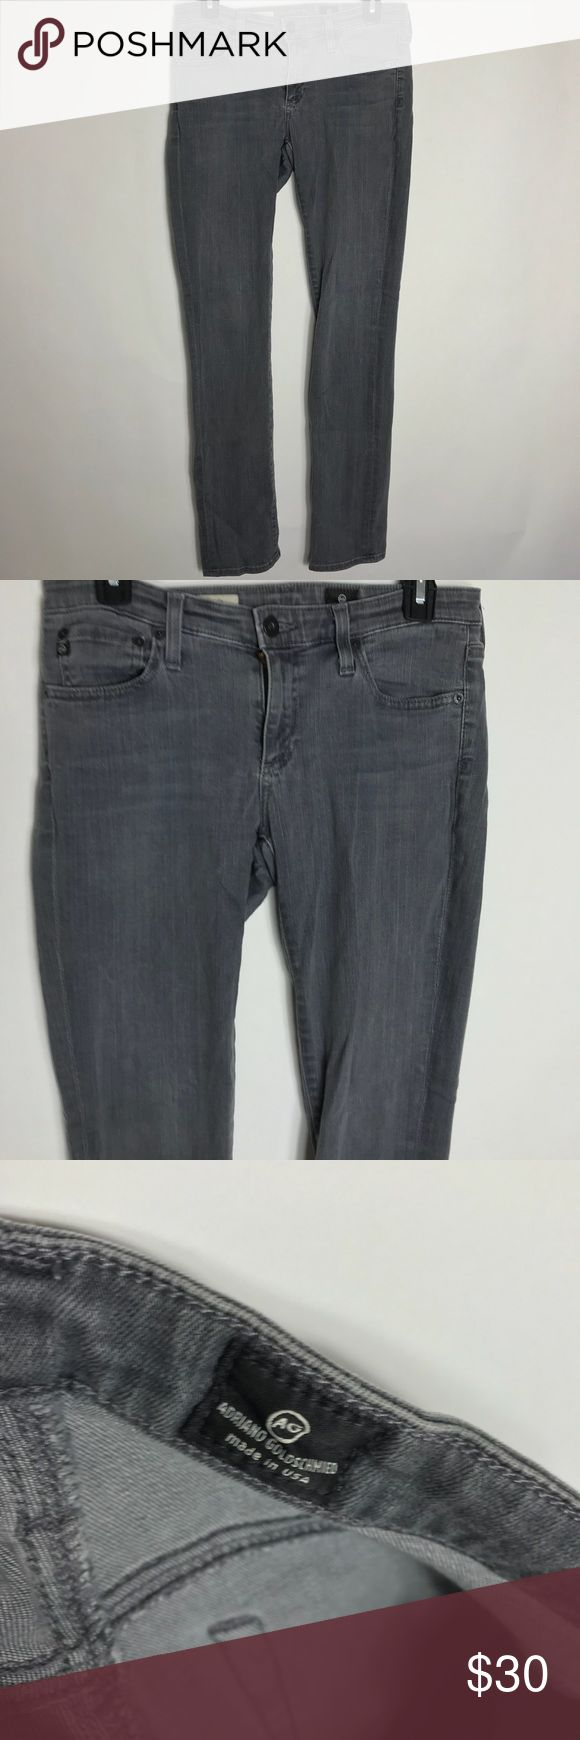 "AG Adriano Goldschmied The Stevie SlimAnkle Jean AG Adriano Goldschmied The Stevie Slim Straight Ankle Jean in Gray Size 28R gently used condition. smoke free home  inseam 31"" waist 15"" rise 8"" Ag Adriano Goldschmied Jeans Skinny"